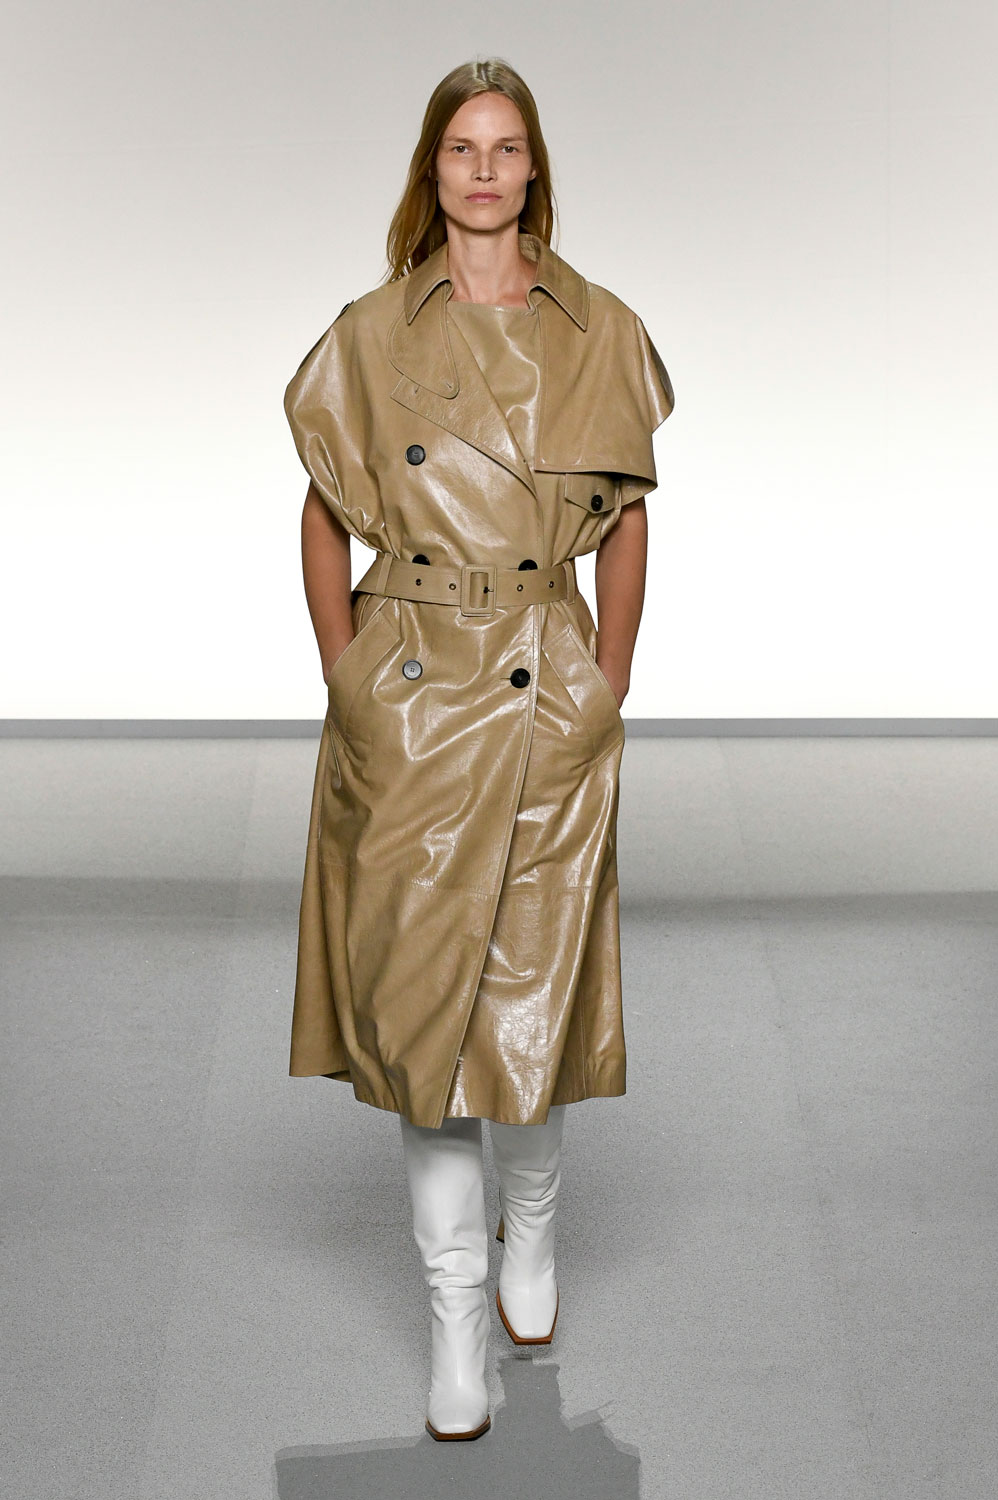 givenchy_wss20_009